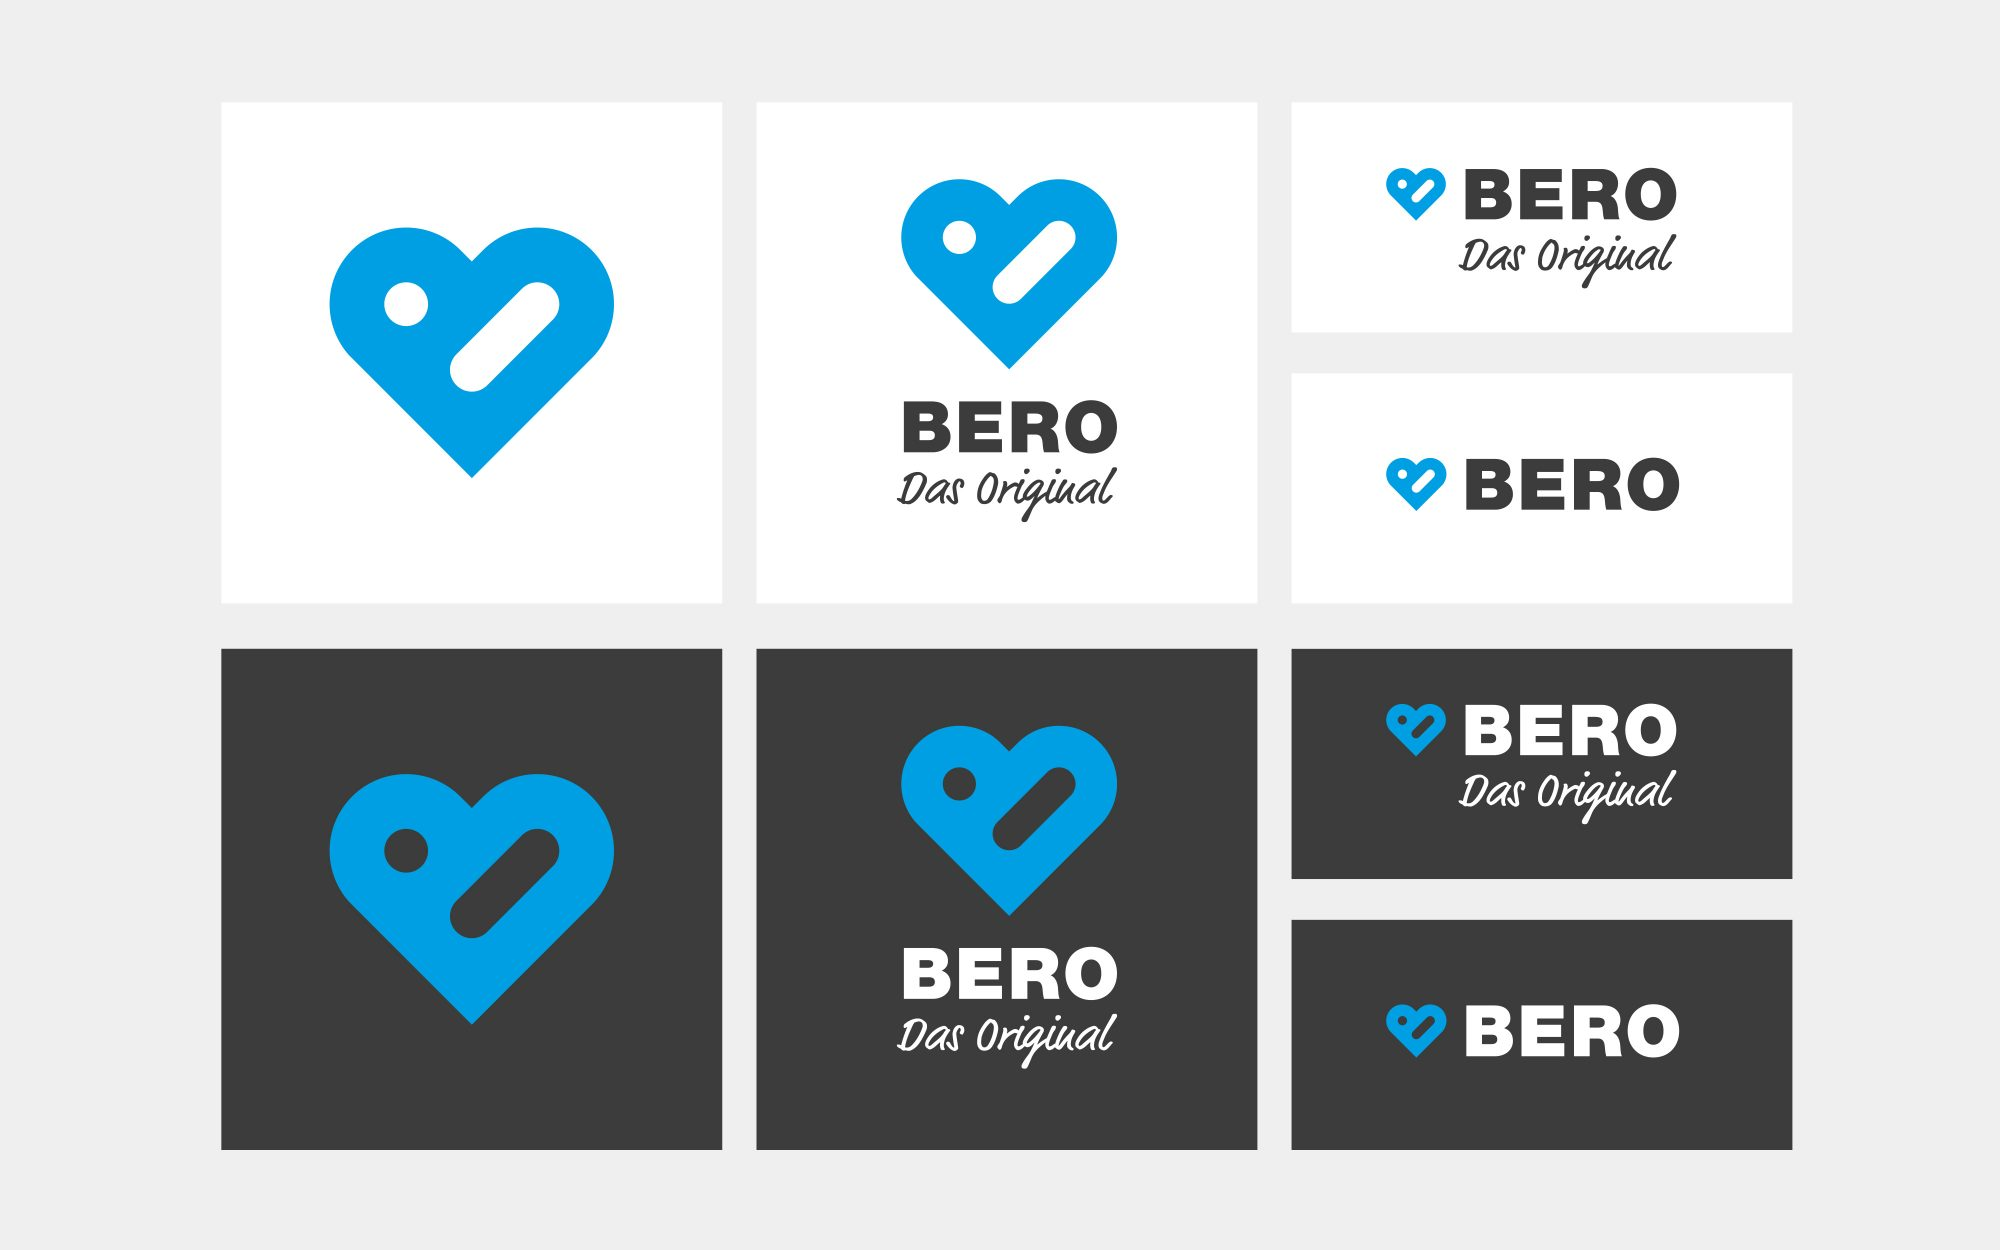 GRACO-Bero-Corporate-Design-Branding-Marke